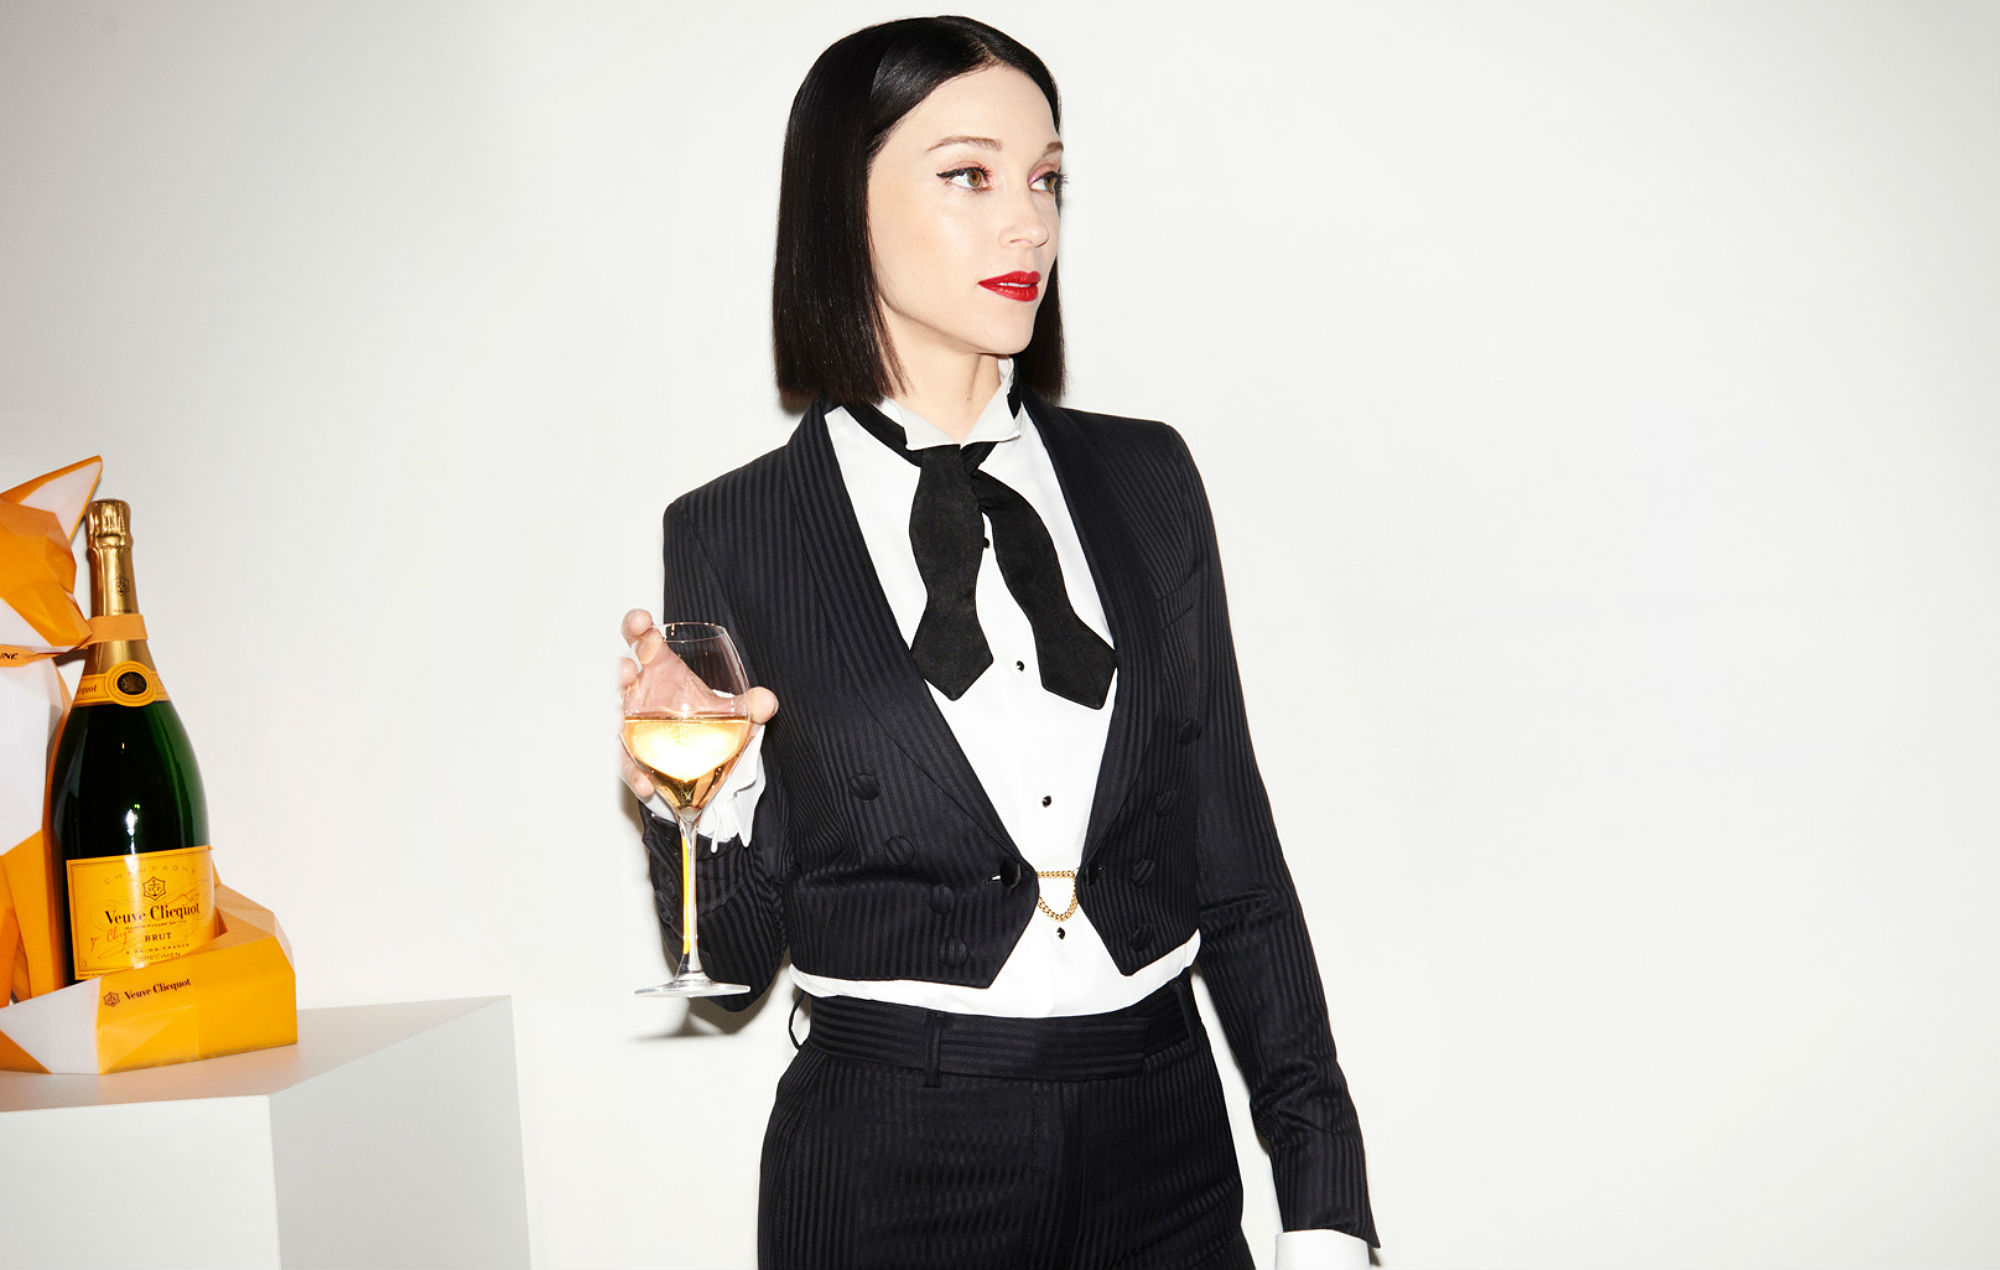 St Vincent is opening her own champagne bar in London next month